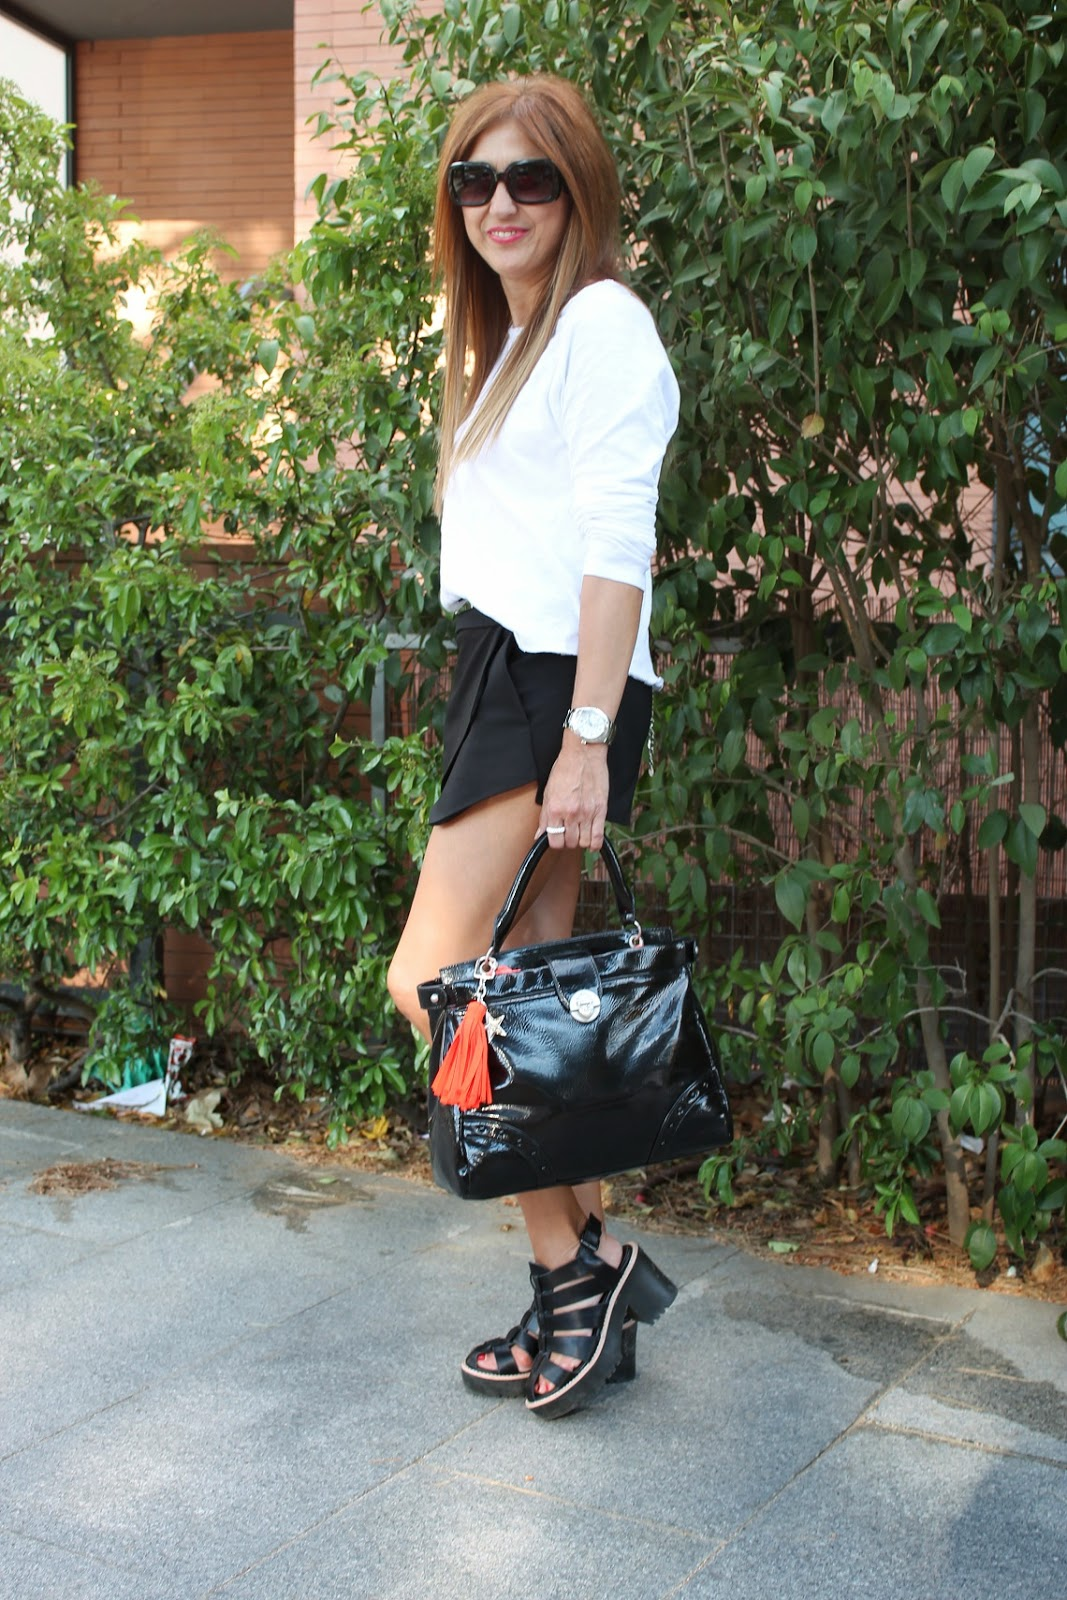 Lollipops, American Vintage, Street Style, Fashion Blogger, Fashion Style, Skirt, T-shirt, Sandals, Bag, Carmen Hummer